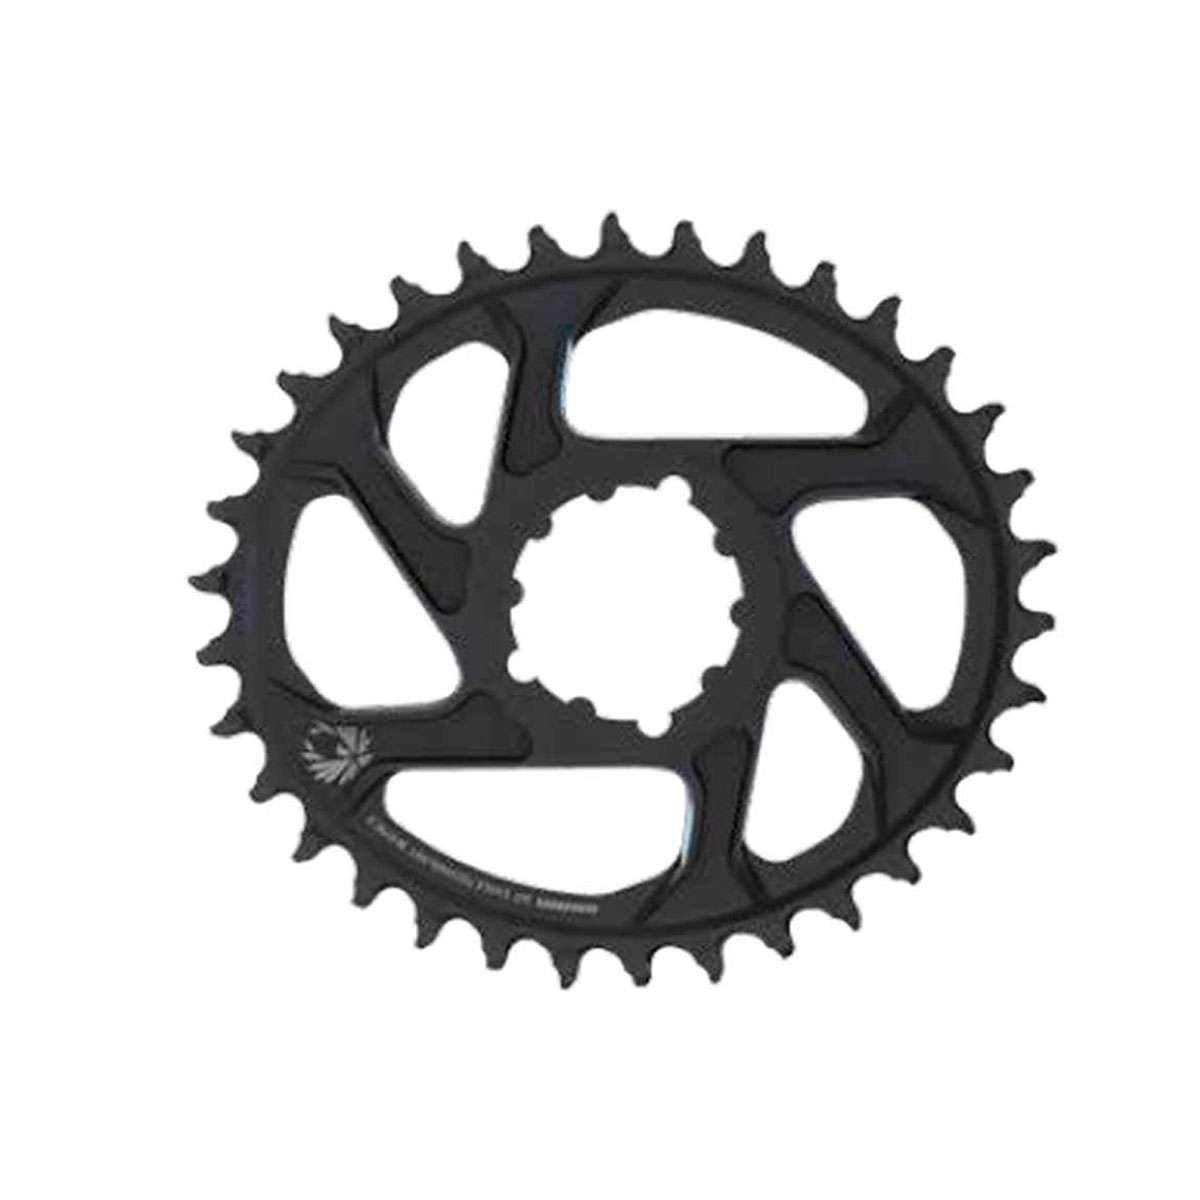 SRAM x-sync 2 Eagle 12-speed Direct Mount Oval Chainring – Boost B073S3QZ2R 38T/3mm Offset|ブラック ブラック 38T/3mm Offset